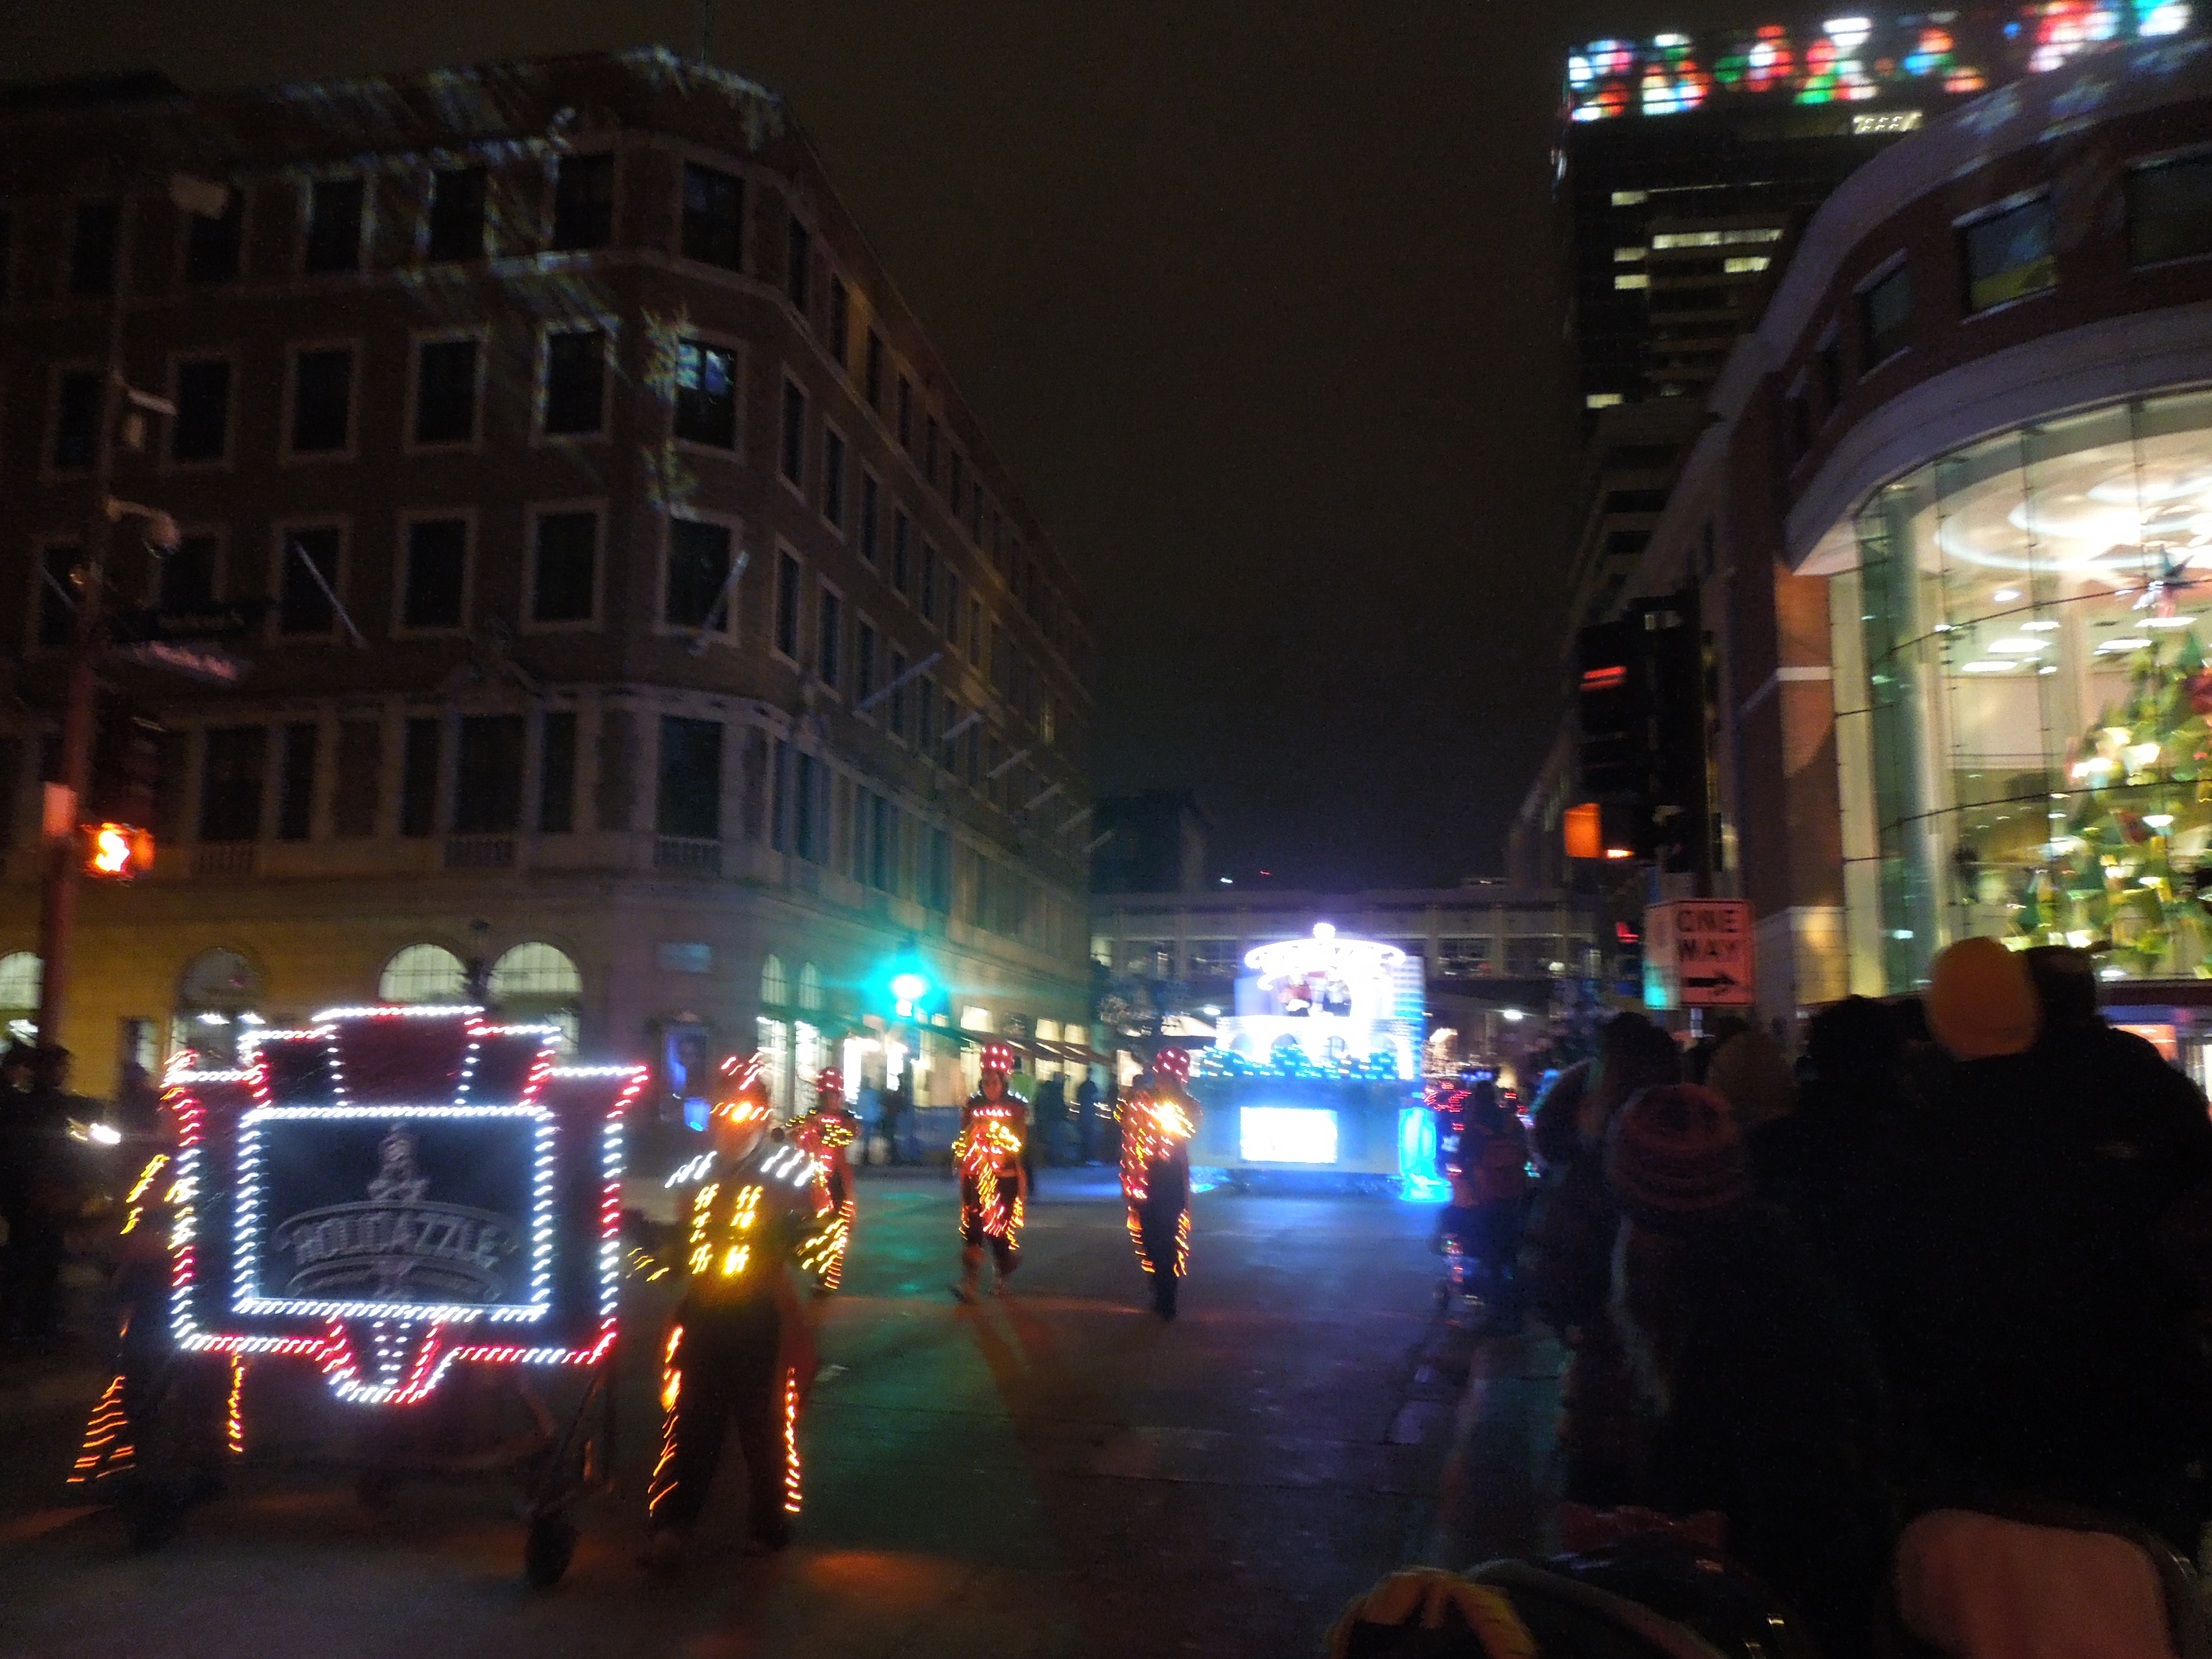 Photo Friday: Holidazzle Parade in Minneapolis DeLIGHTS All Ages!